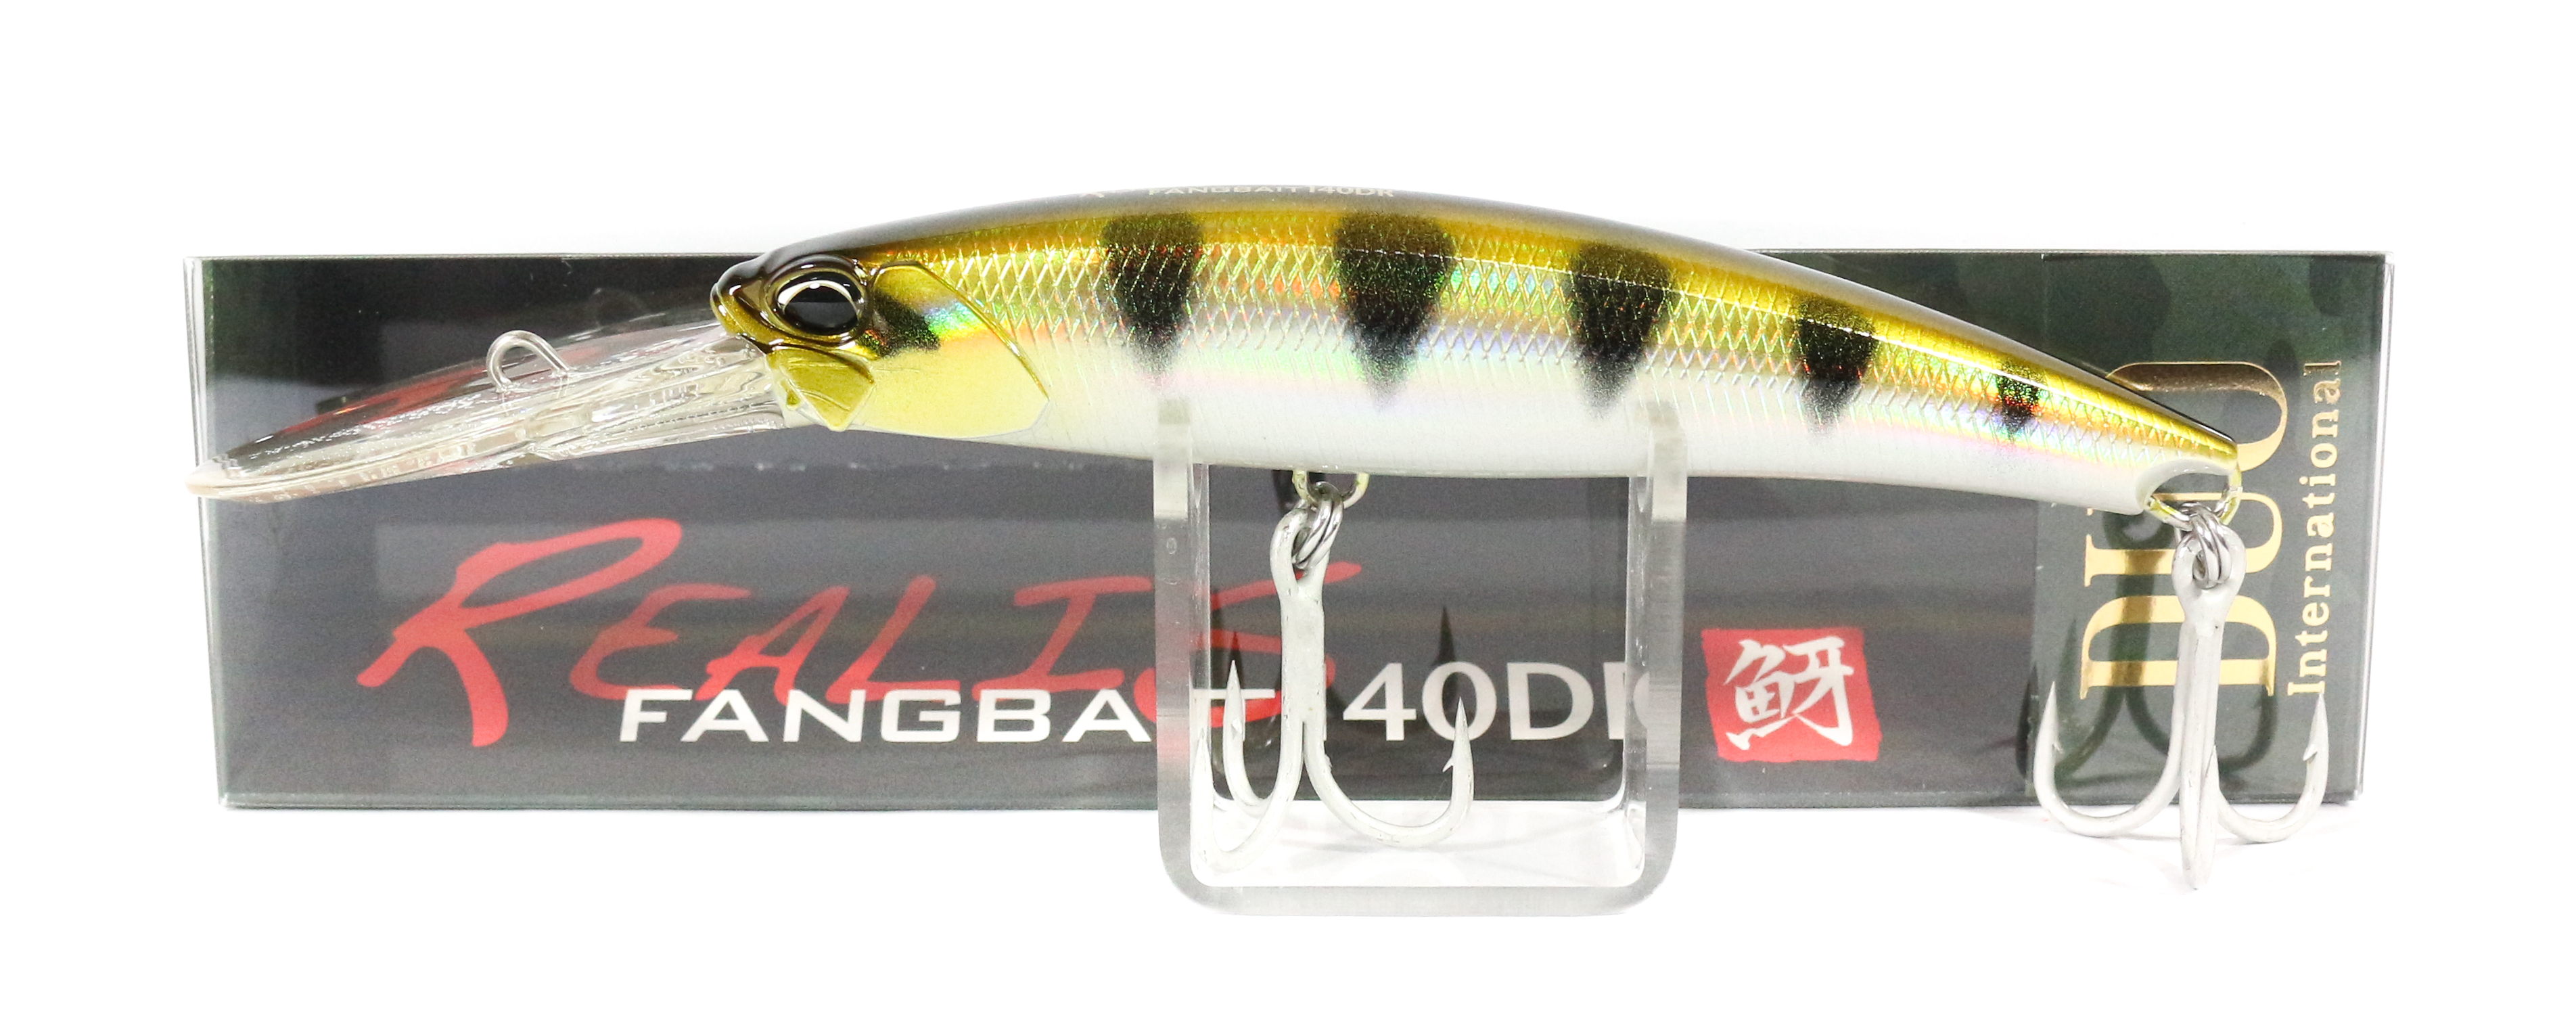 Duo Realis Fangbait 140DR Floating Lure ANA3344 (3823)